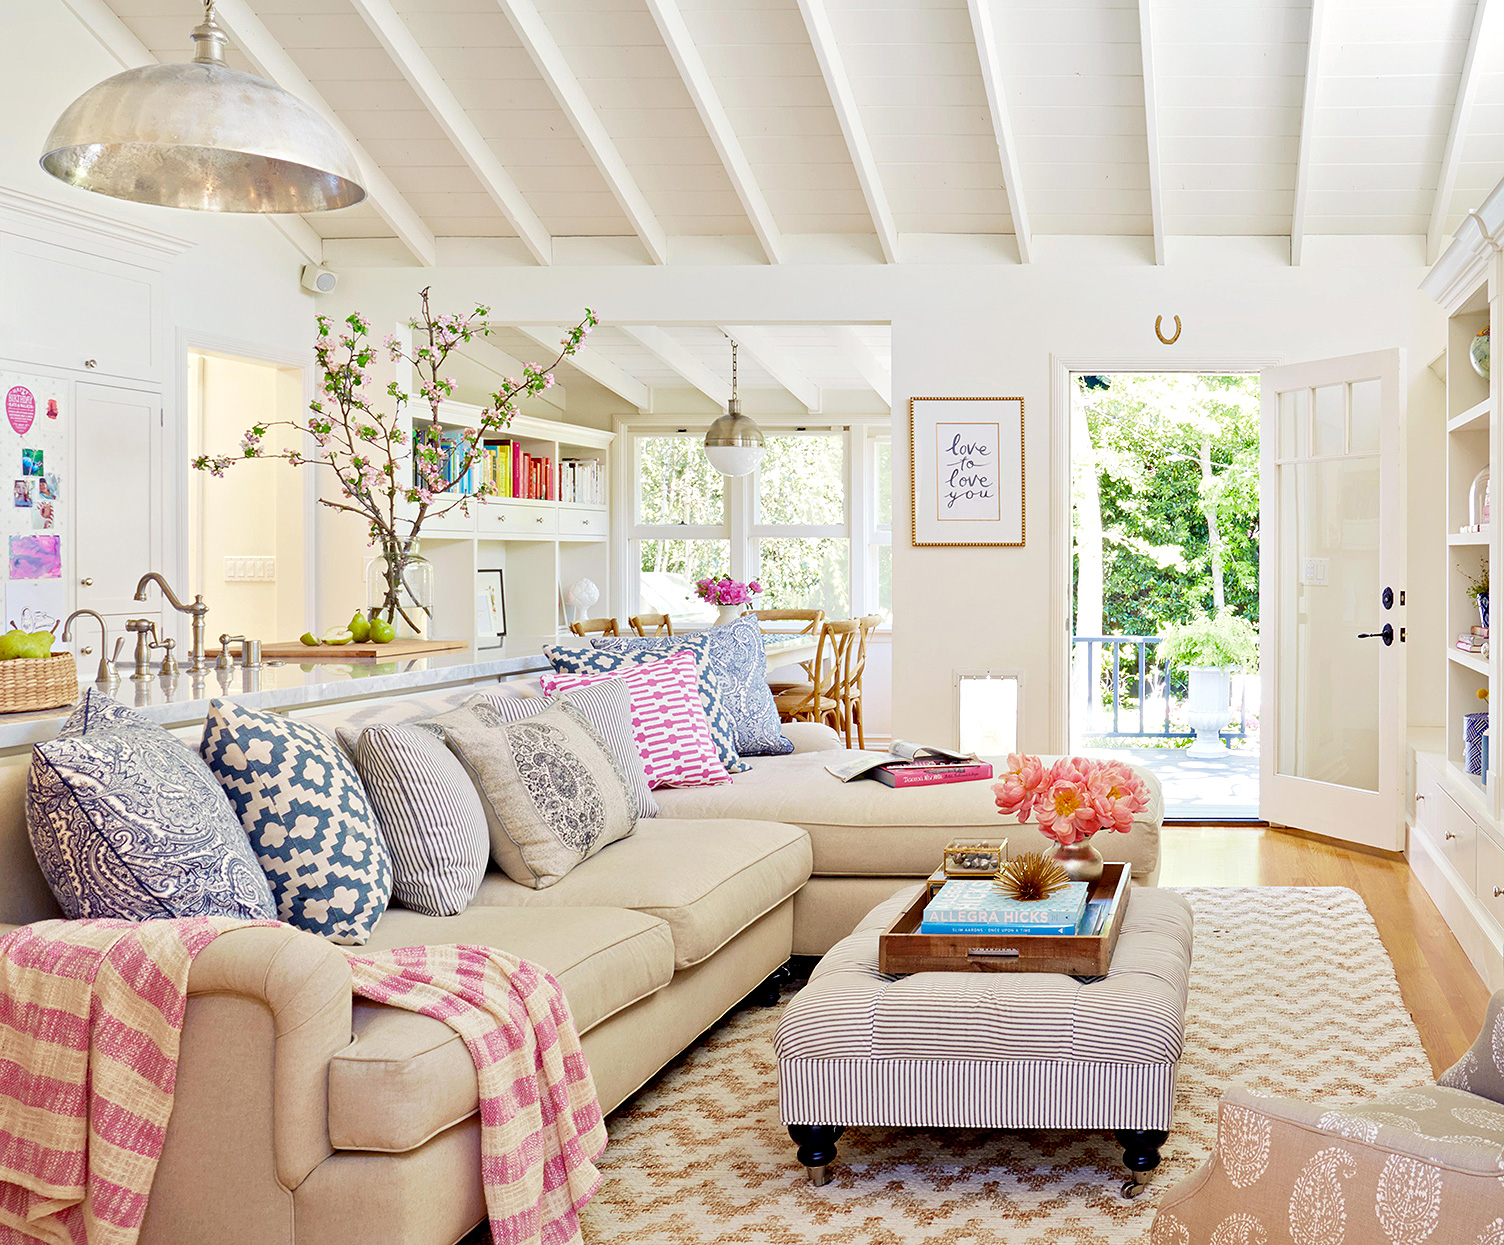 pink-and-blue themed open-concept living room and kitchen